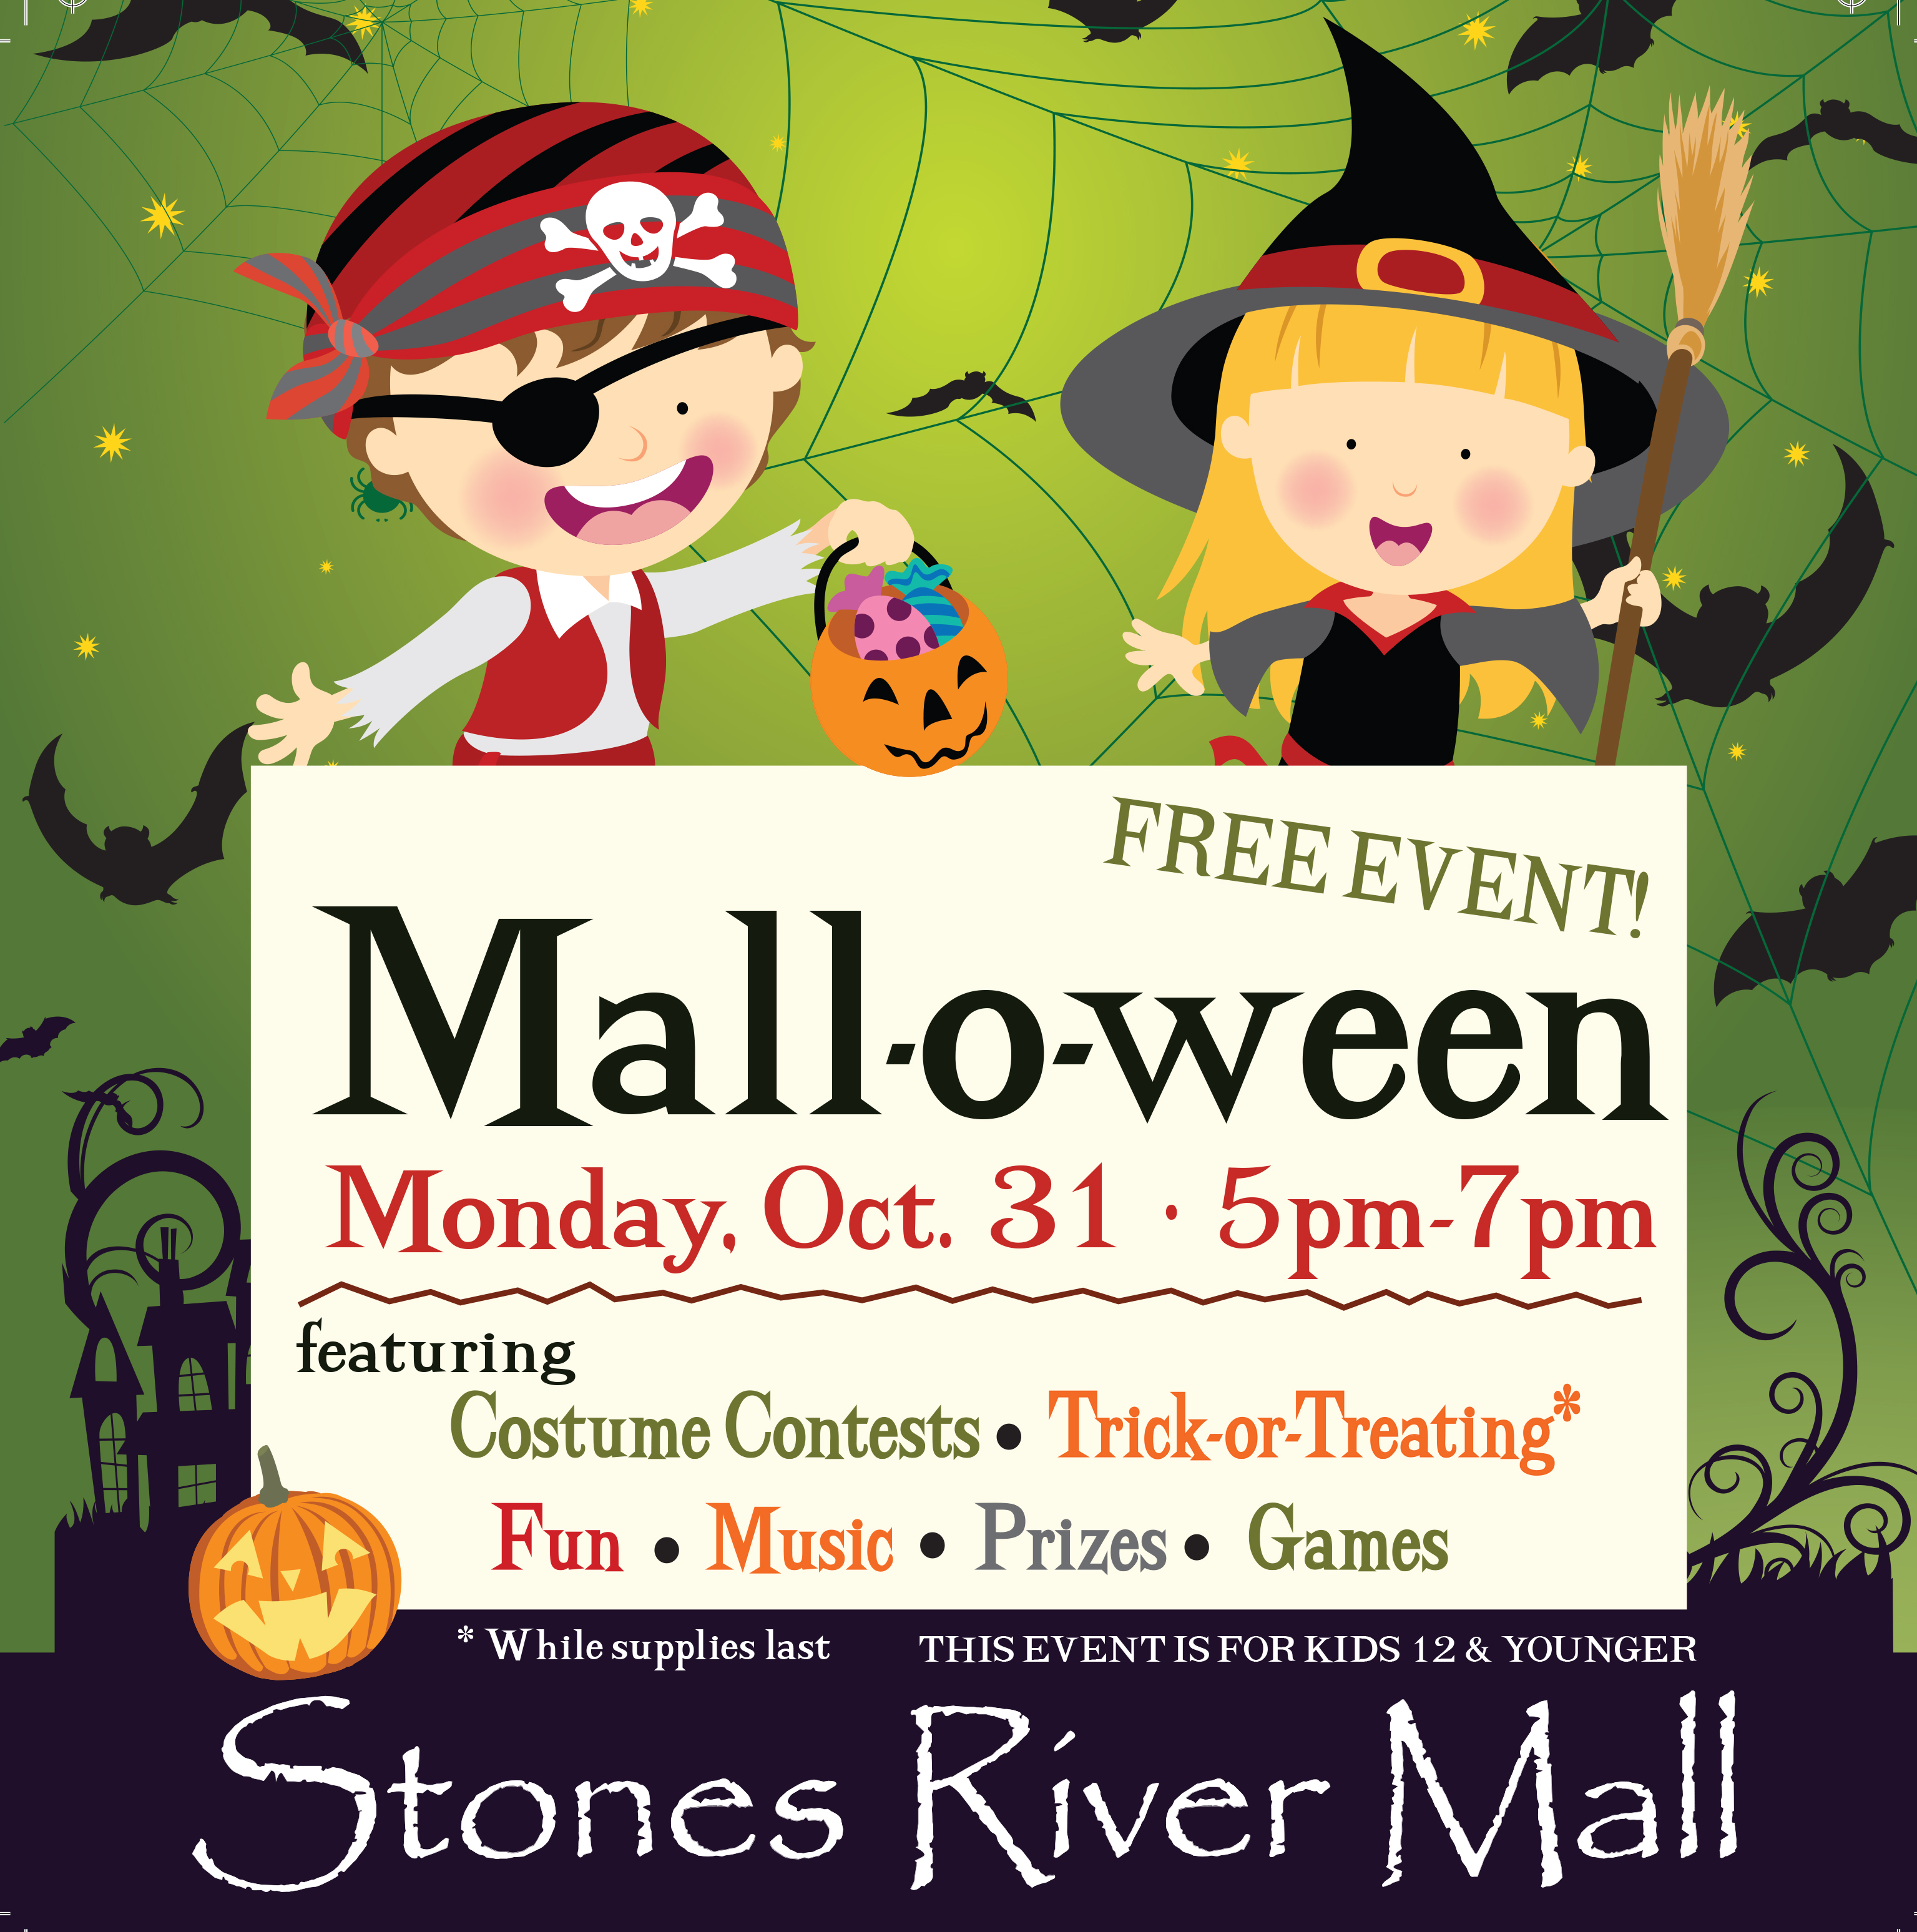 4th Annual Mall-O-Ween set for Oct. 31 at Stones River Mall